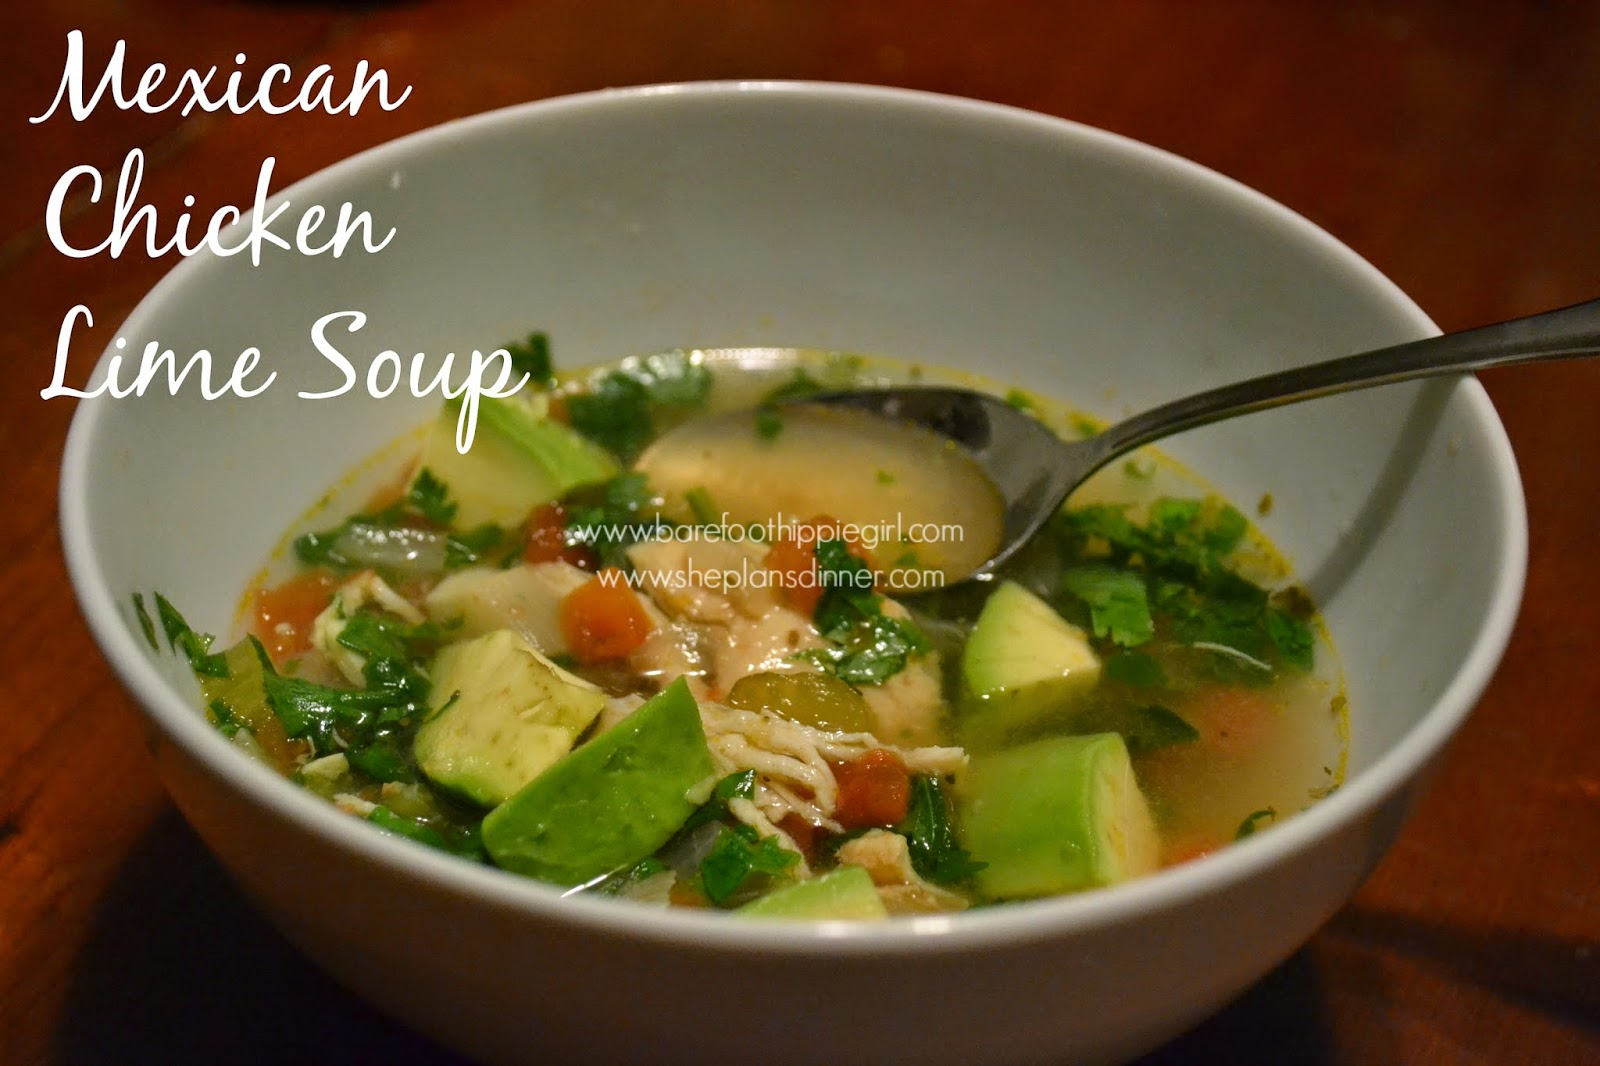 Barefoot Hippie Girl: Mexican Chicken Lime Soup